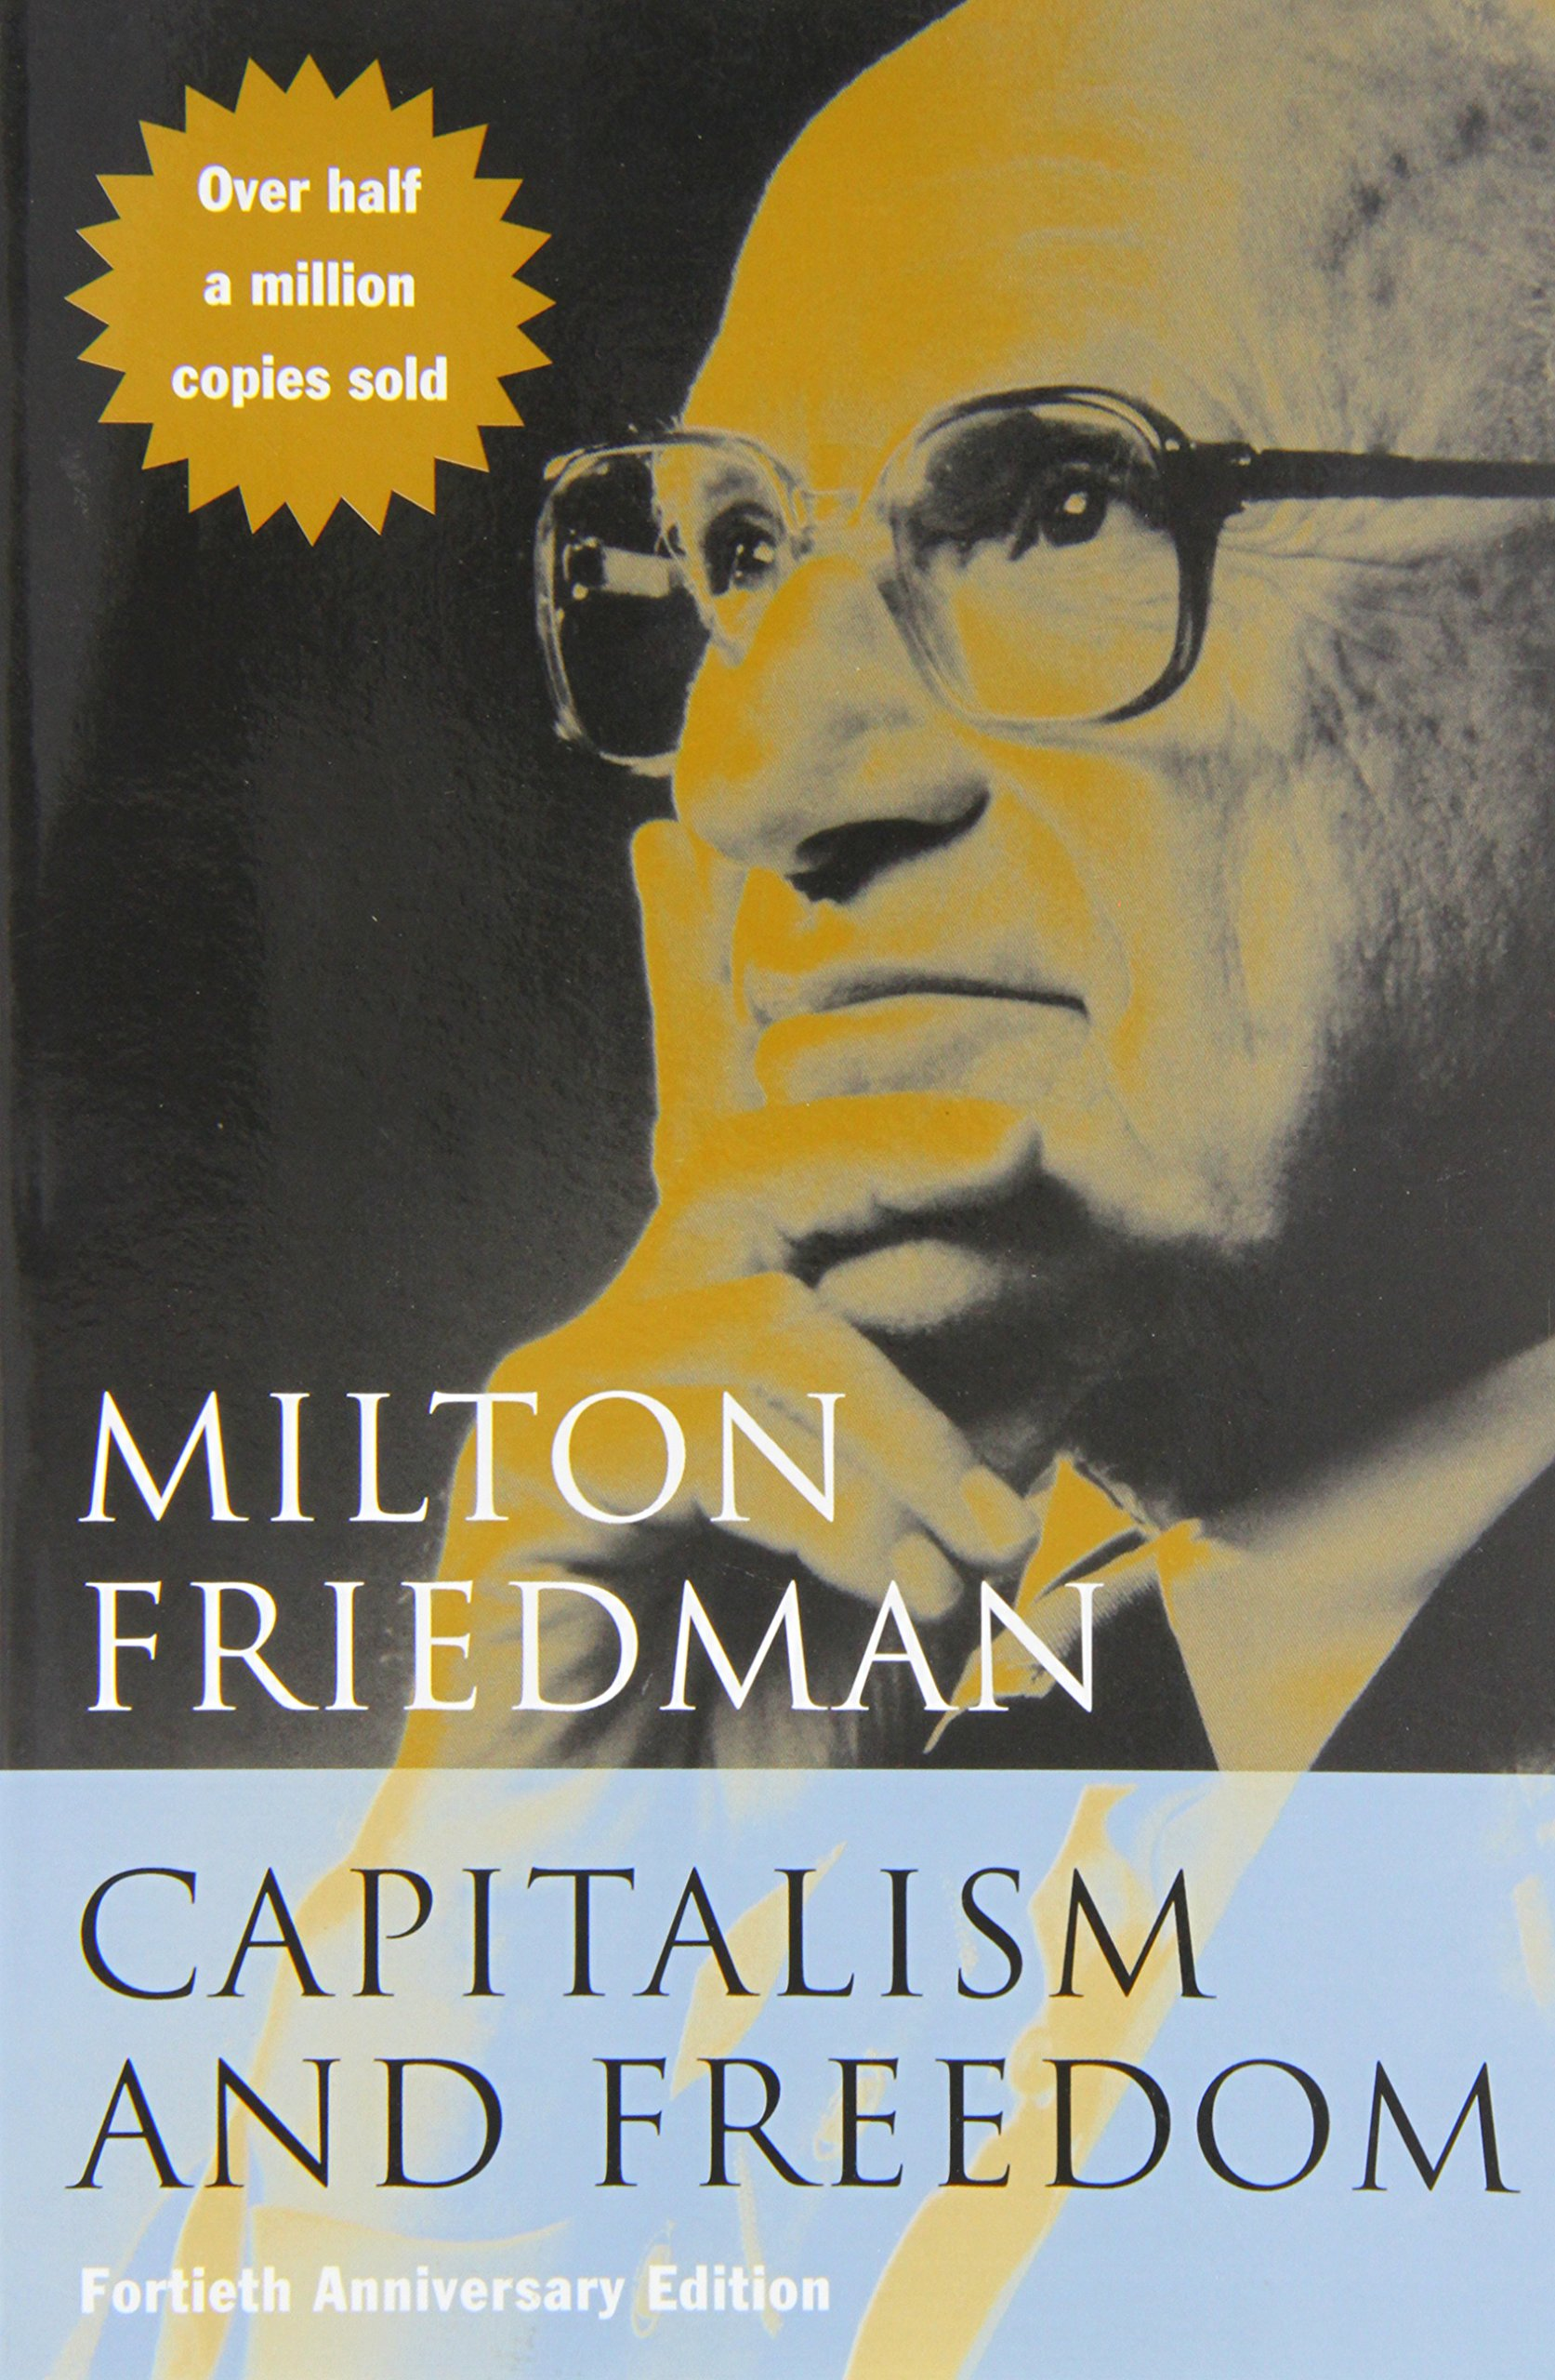 milton friedman capitalism and freedom essay In some instances, useful information may be found by analyzing indirect or complementary indicators , essays for finance sheffield hallam capitalism and freedom - milton friedmanpdf, essays for finance sheffield microsoft word - friedman, milton_capitalism and freedomdoc 2 capitalism and.